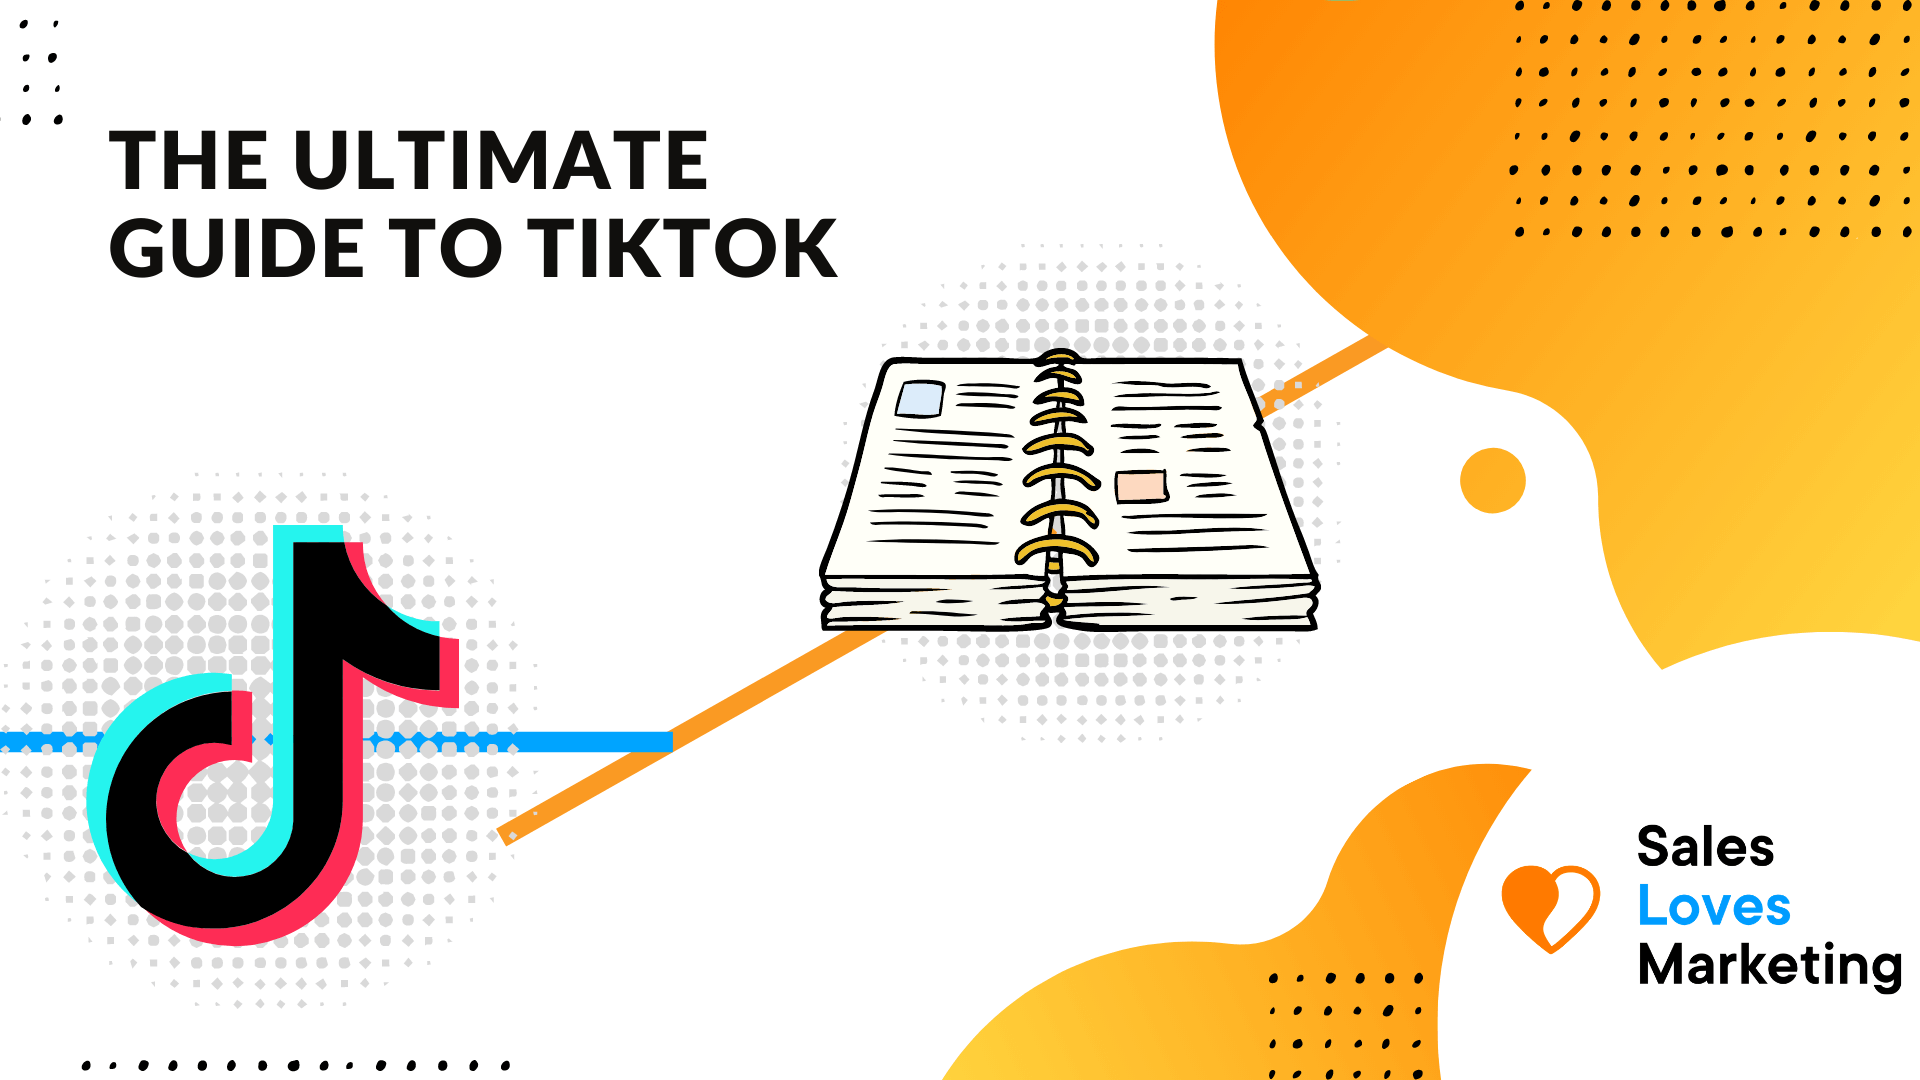 The Ultimate Guide to TikTok: Everything You need to Know About TikTok